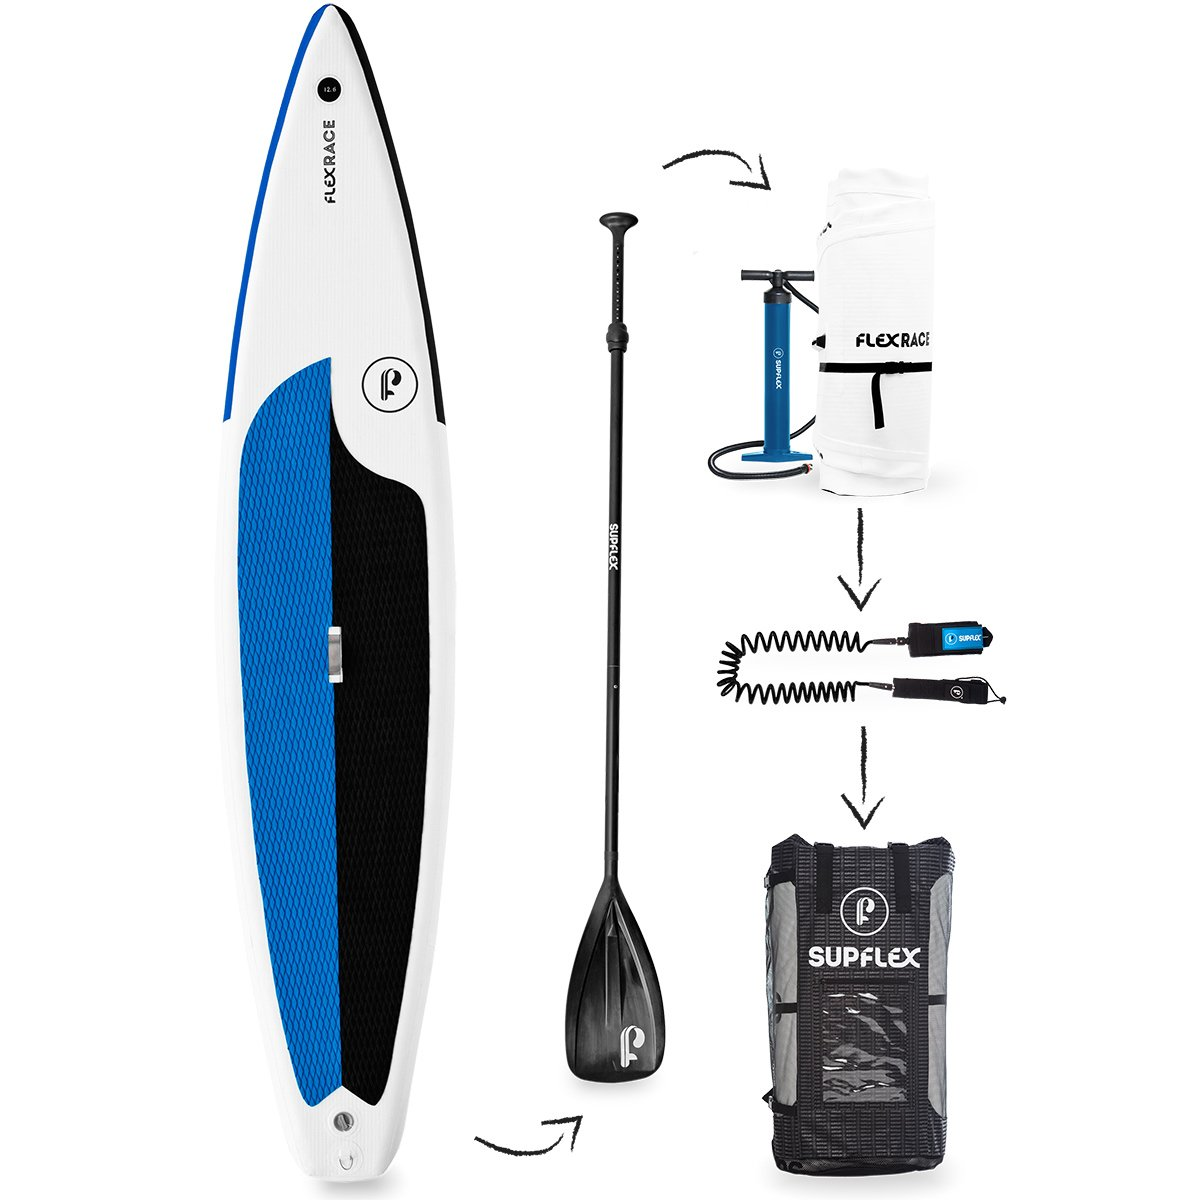 Supflex iSUP 12'6'' FLEXRACE (6'' Thick) Inflatable Stand Up Paddle Board Package - Board, Pump, Bag, Paddle & Free Leash